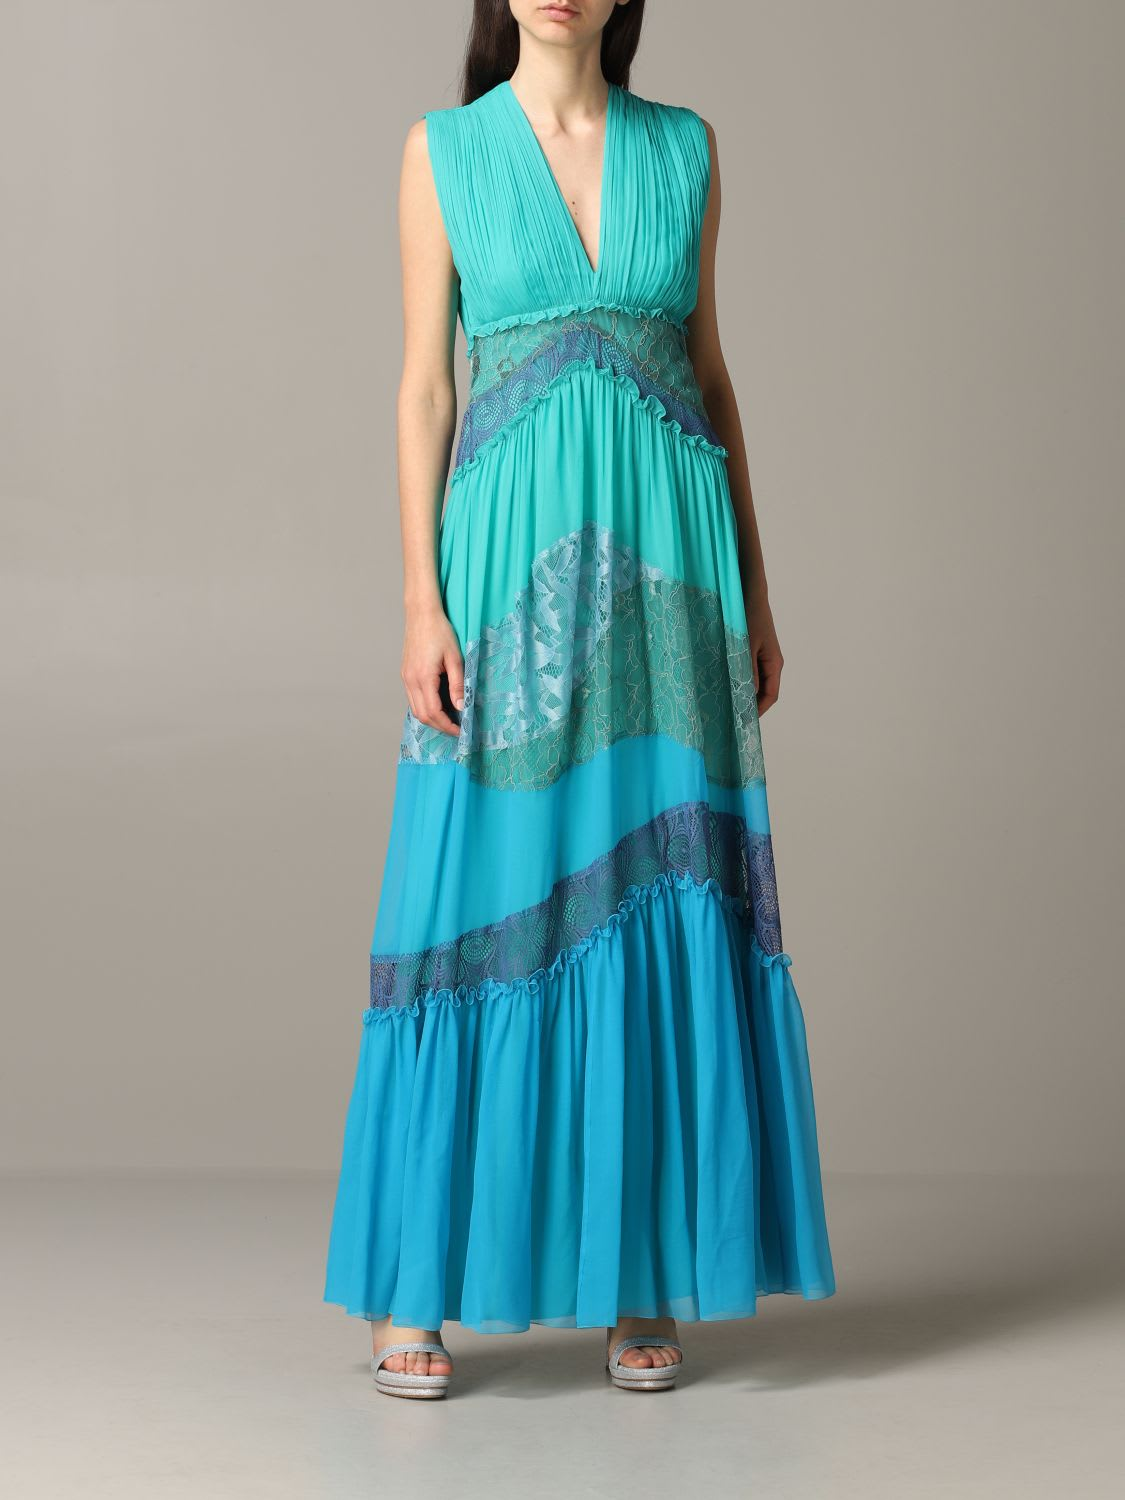 Buy Alberta Ferretti Dress Alberta Ferretti Maxi Dress In Chiffon And Lace online, shop Alberta Ferretti with free shipping